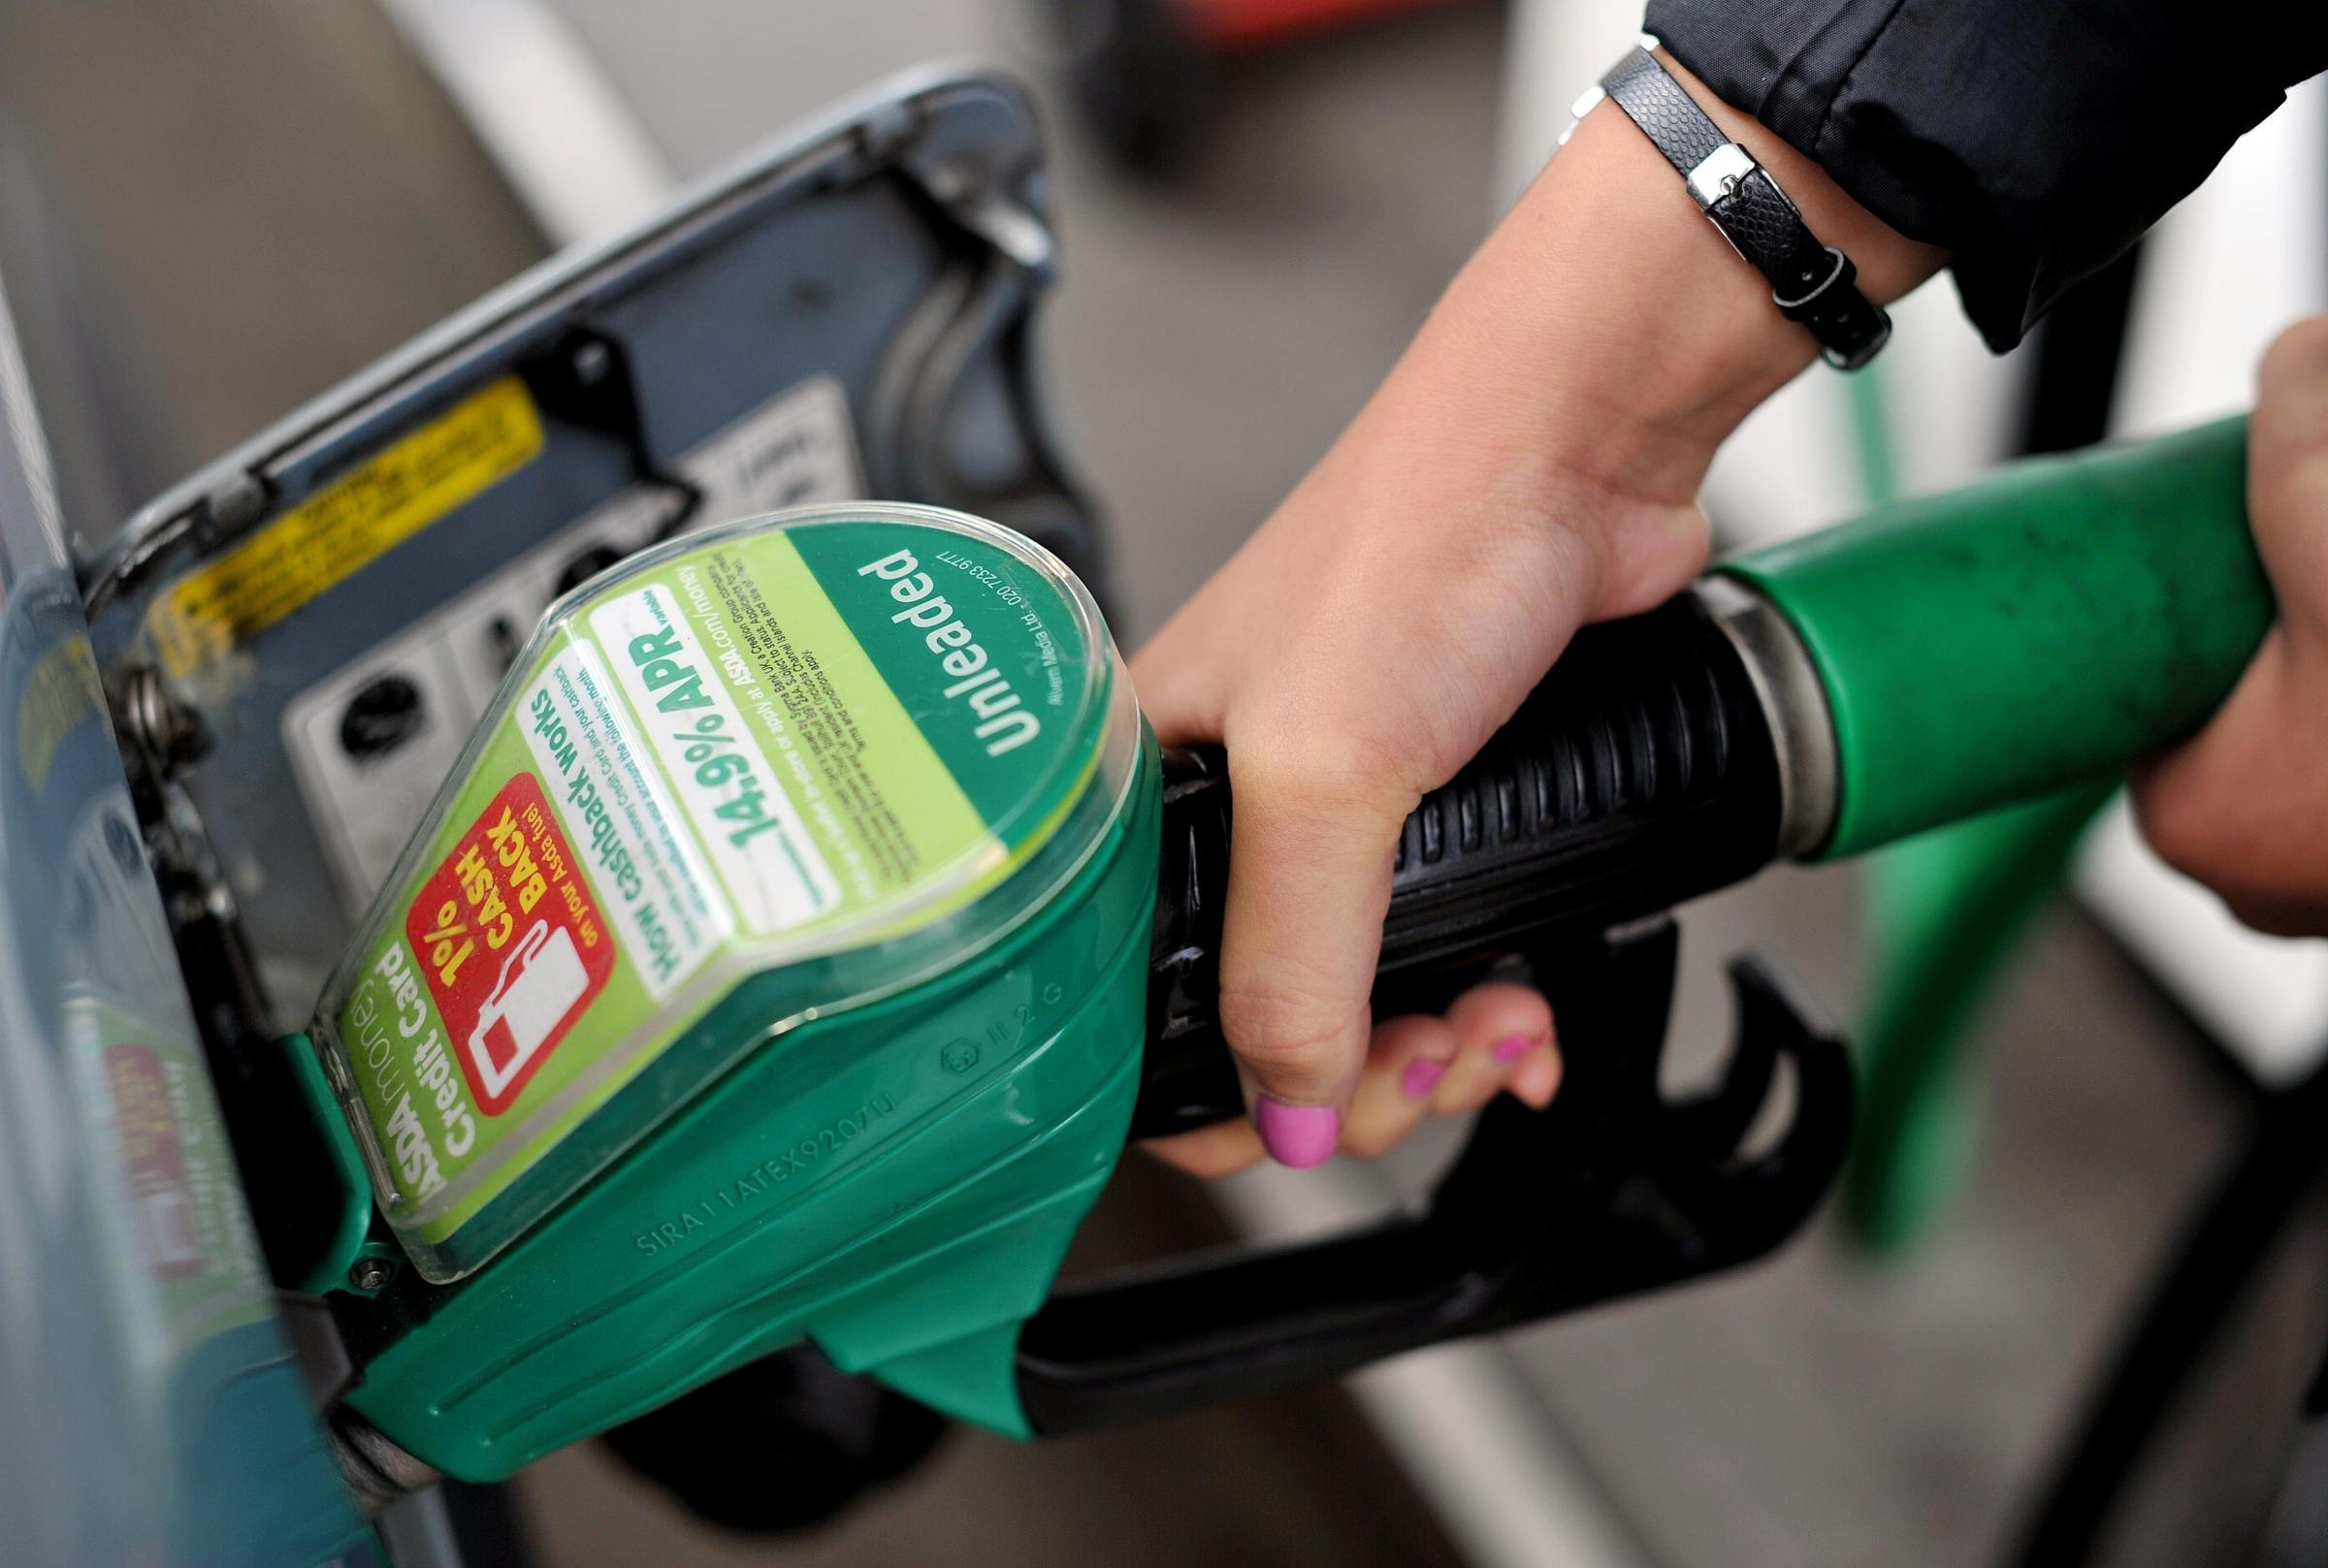 File photo dated 15/8/13 of a person using an Asda petrol pump. The supermarket is to cut its petrol and diesel prices amid claims that fuel retailers are overcharging motorists. PRESS ASSOCIATION Photo. Issue date: Monday January 7, 2019. See PA story T